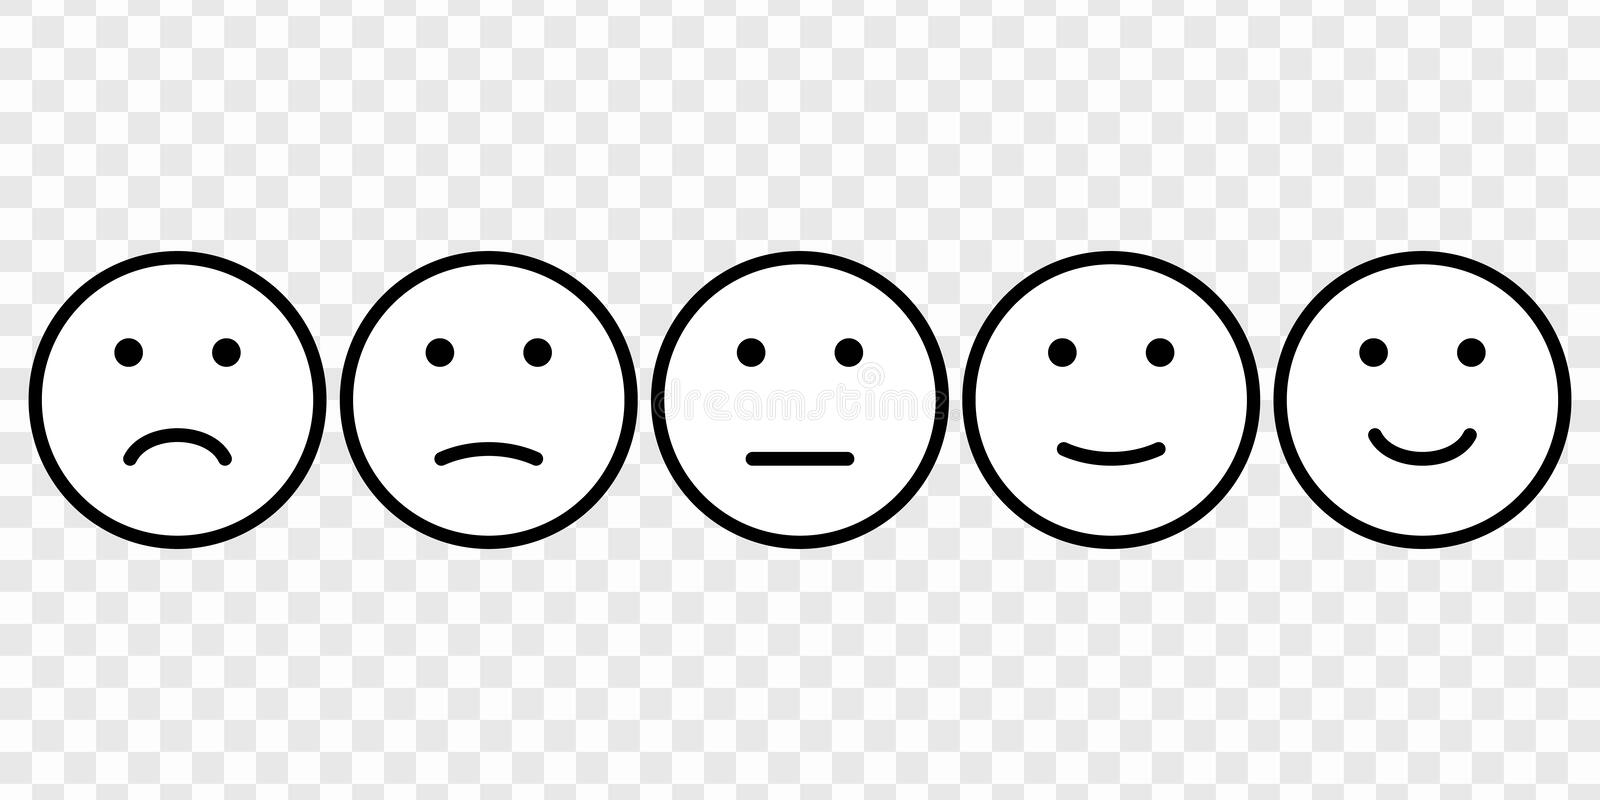 Smiley Face Evaluation Stock Illustrations – 426 Smiley Face